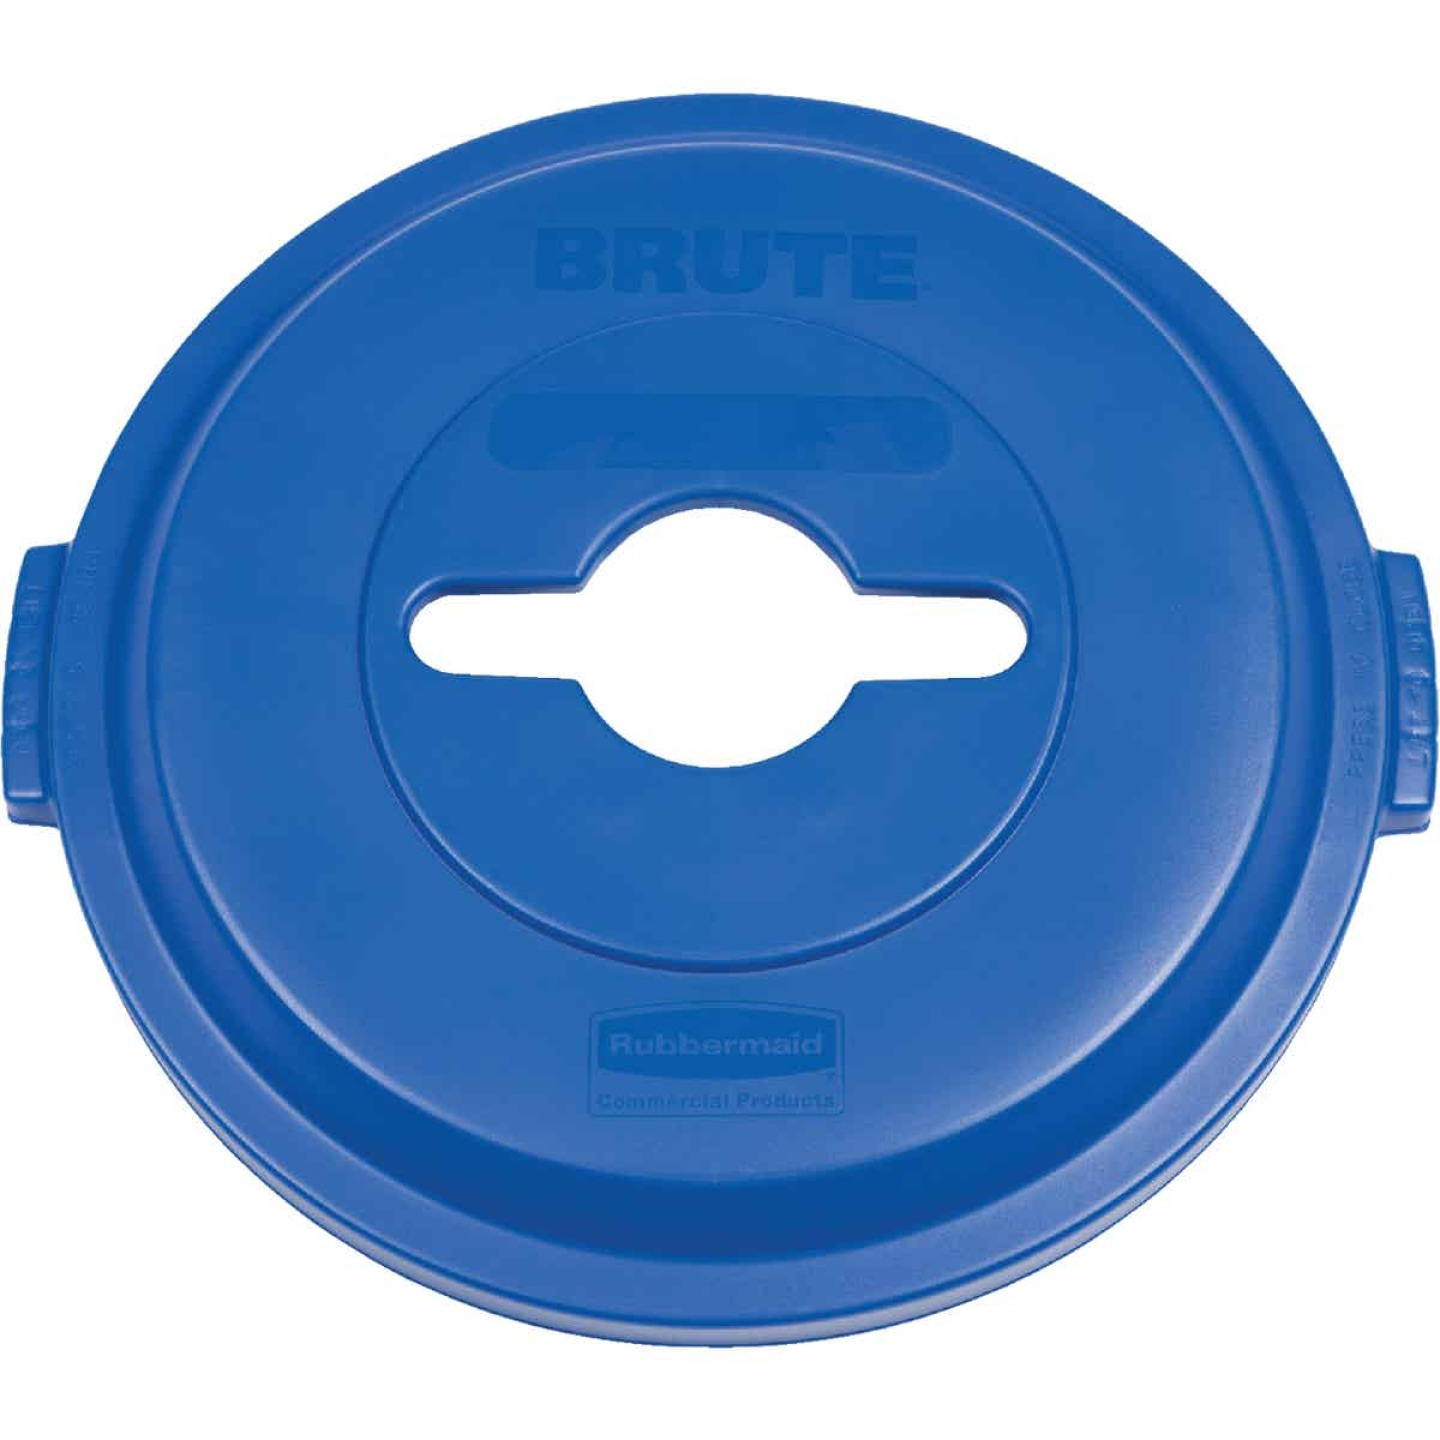 Rubbermaid Commercial Brute Blue Recycle Trash Can Lid for 32 Gal. Trash Can Image 1